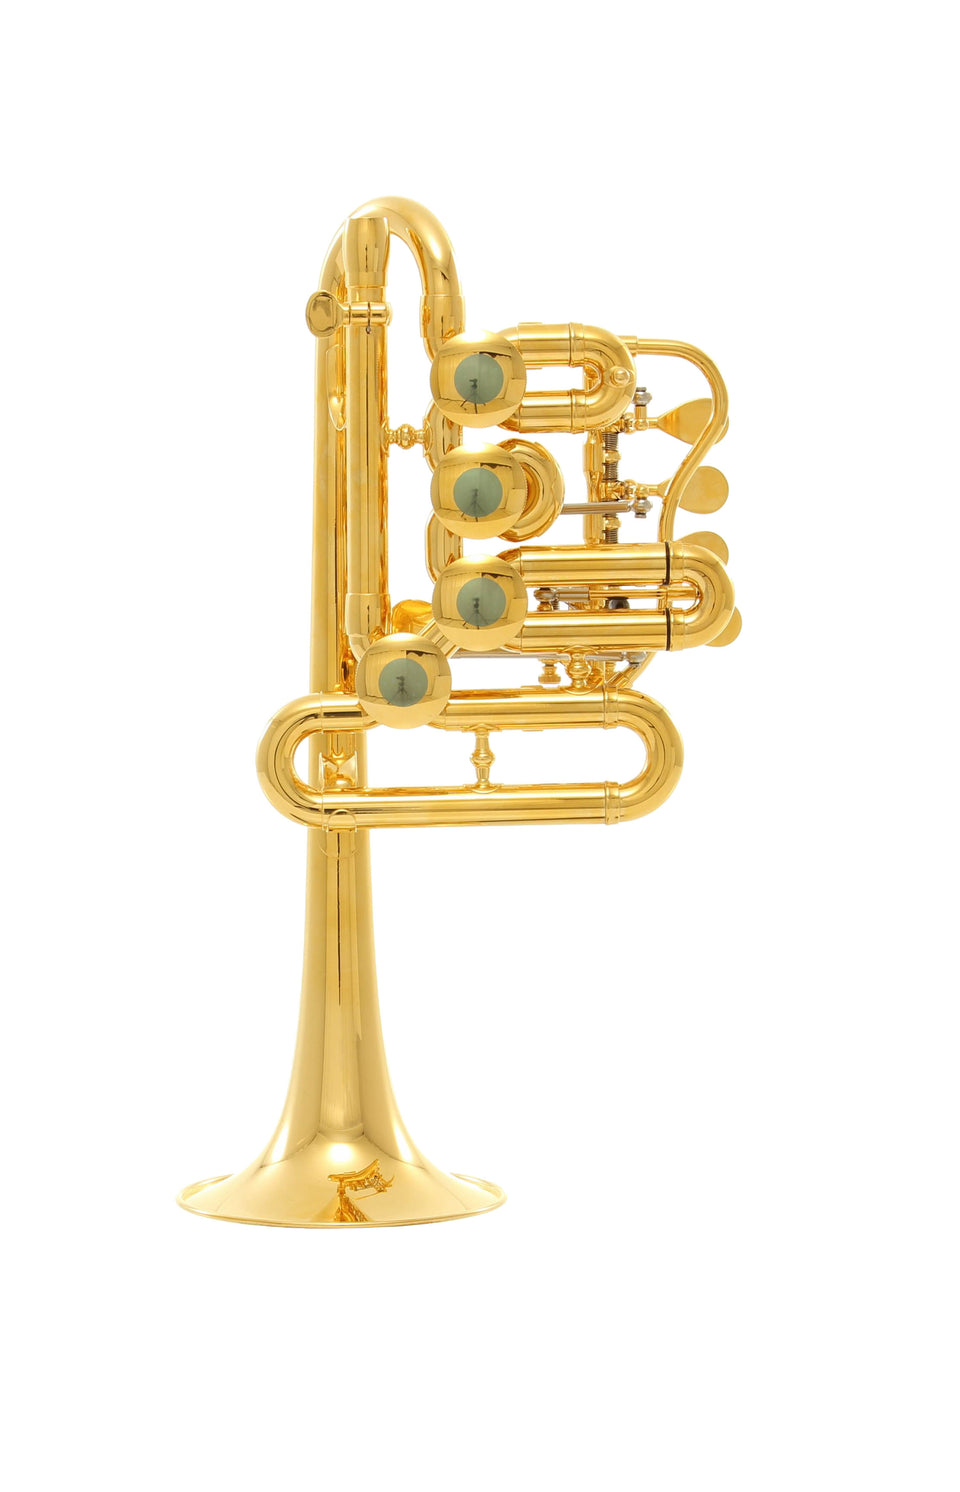 Schagerl Berlin B-Flat/A Piccolo Trumpet - Gold Plated